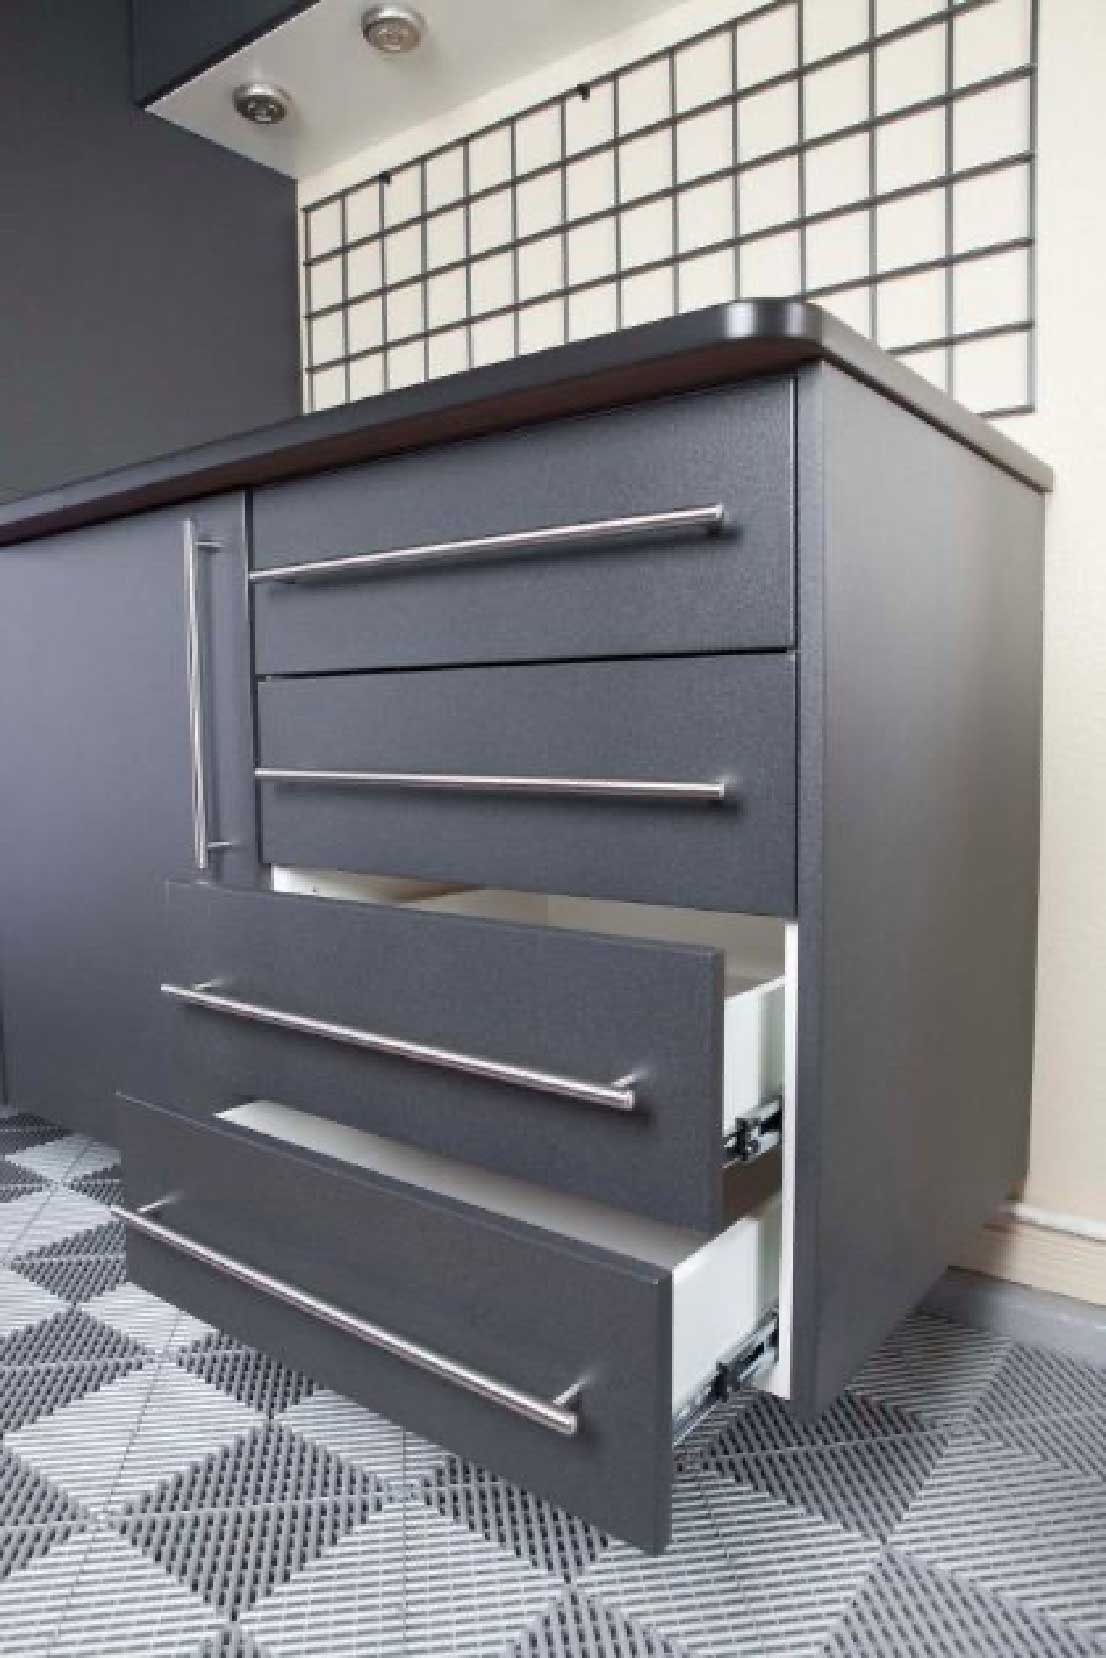 Granite-Close-up-with-EbonyStar-and-Grey-Swis-Trax-drawers-open.jpg